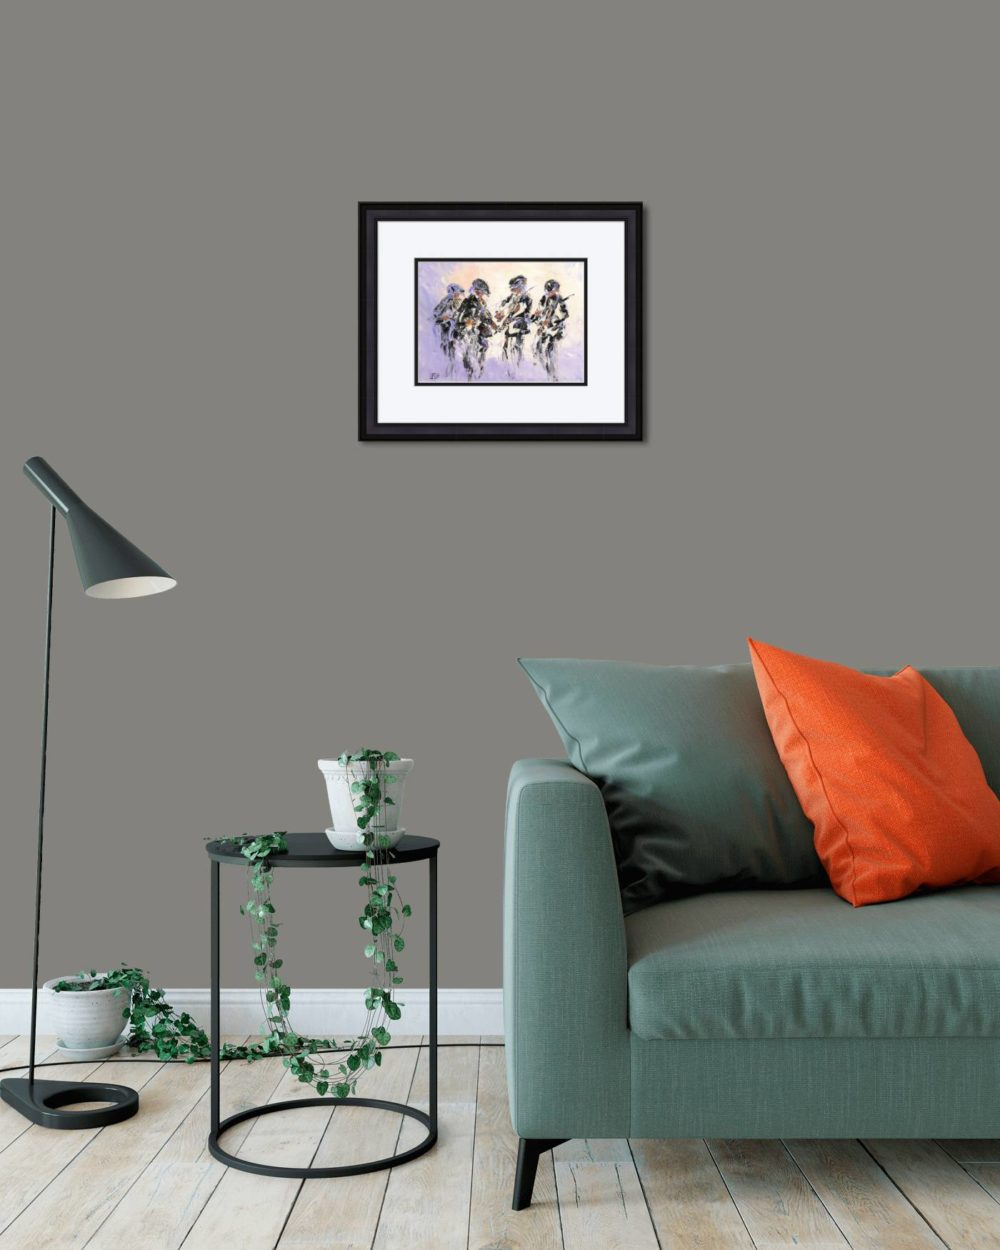 Fiddlers Four Print (Small) in Black Frame in Room